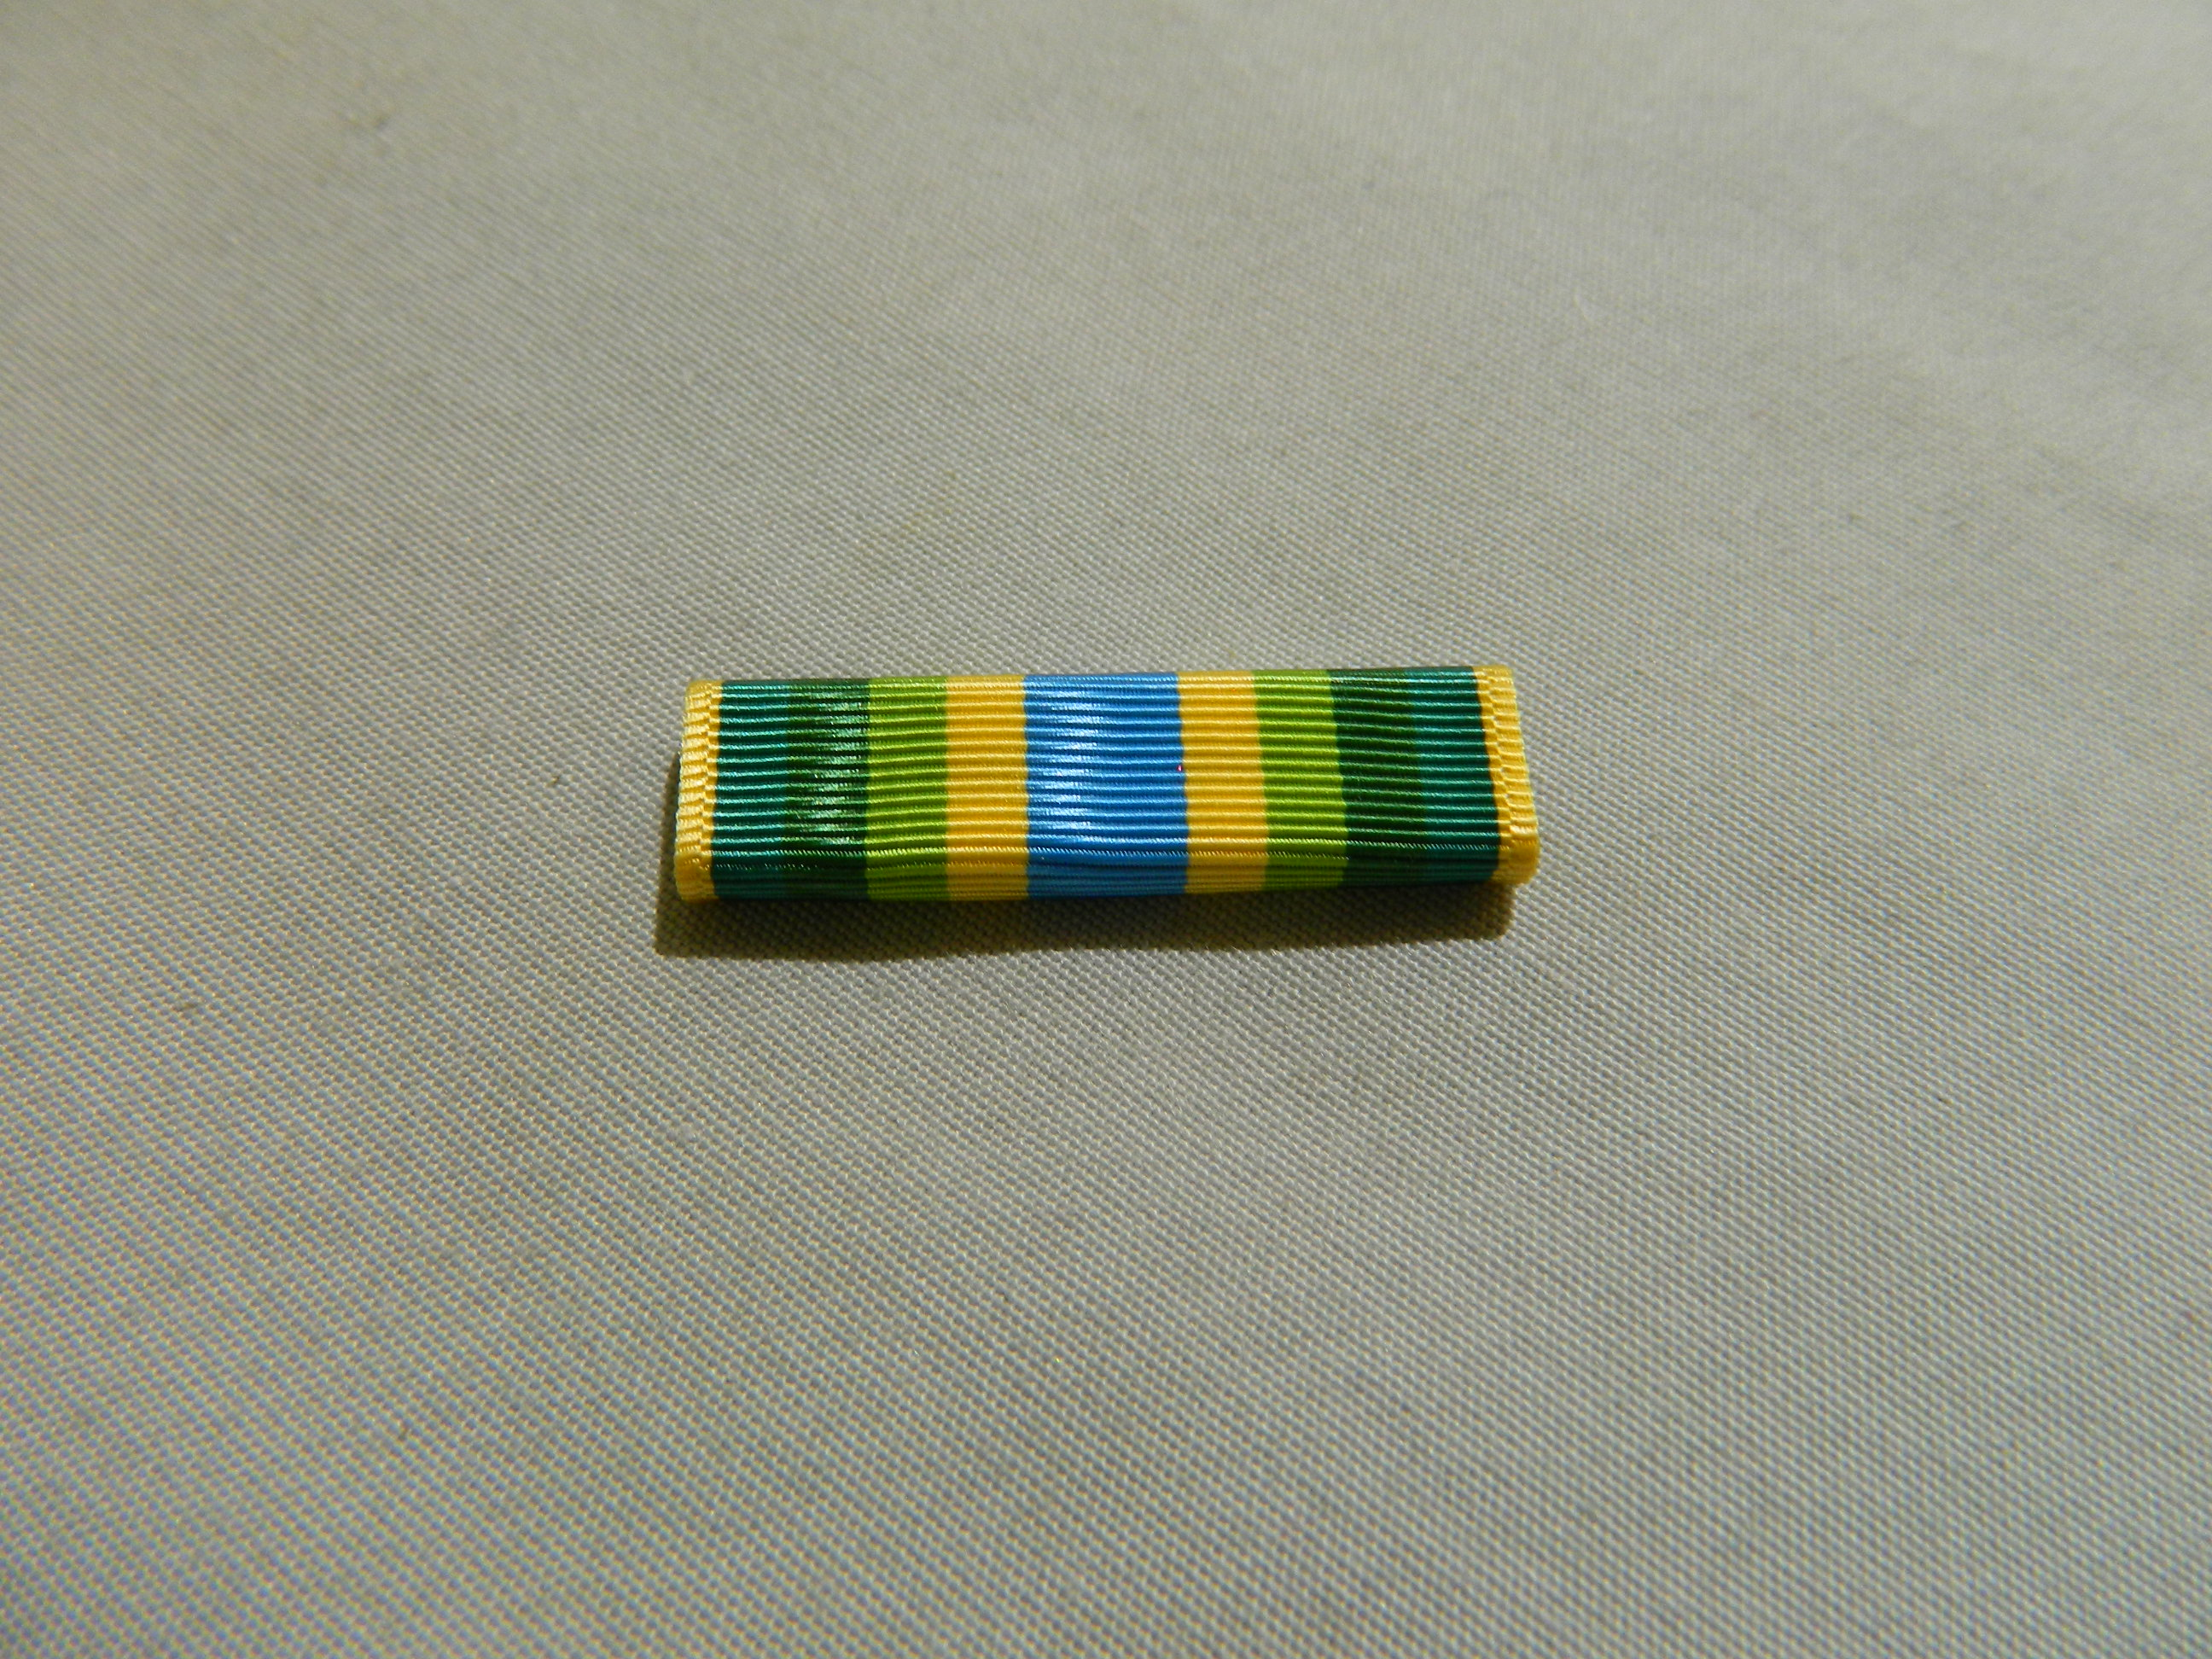 Ribbon: Armed Forces Service Medal